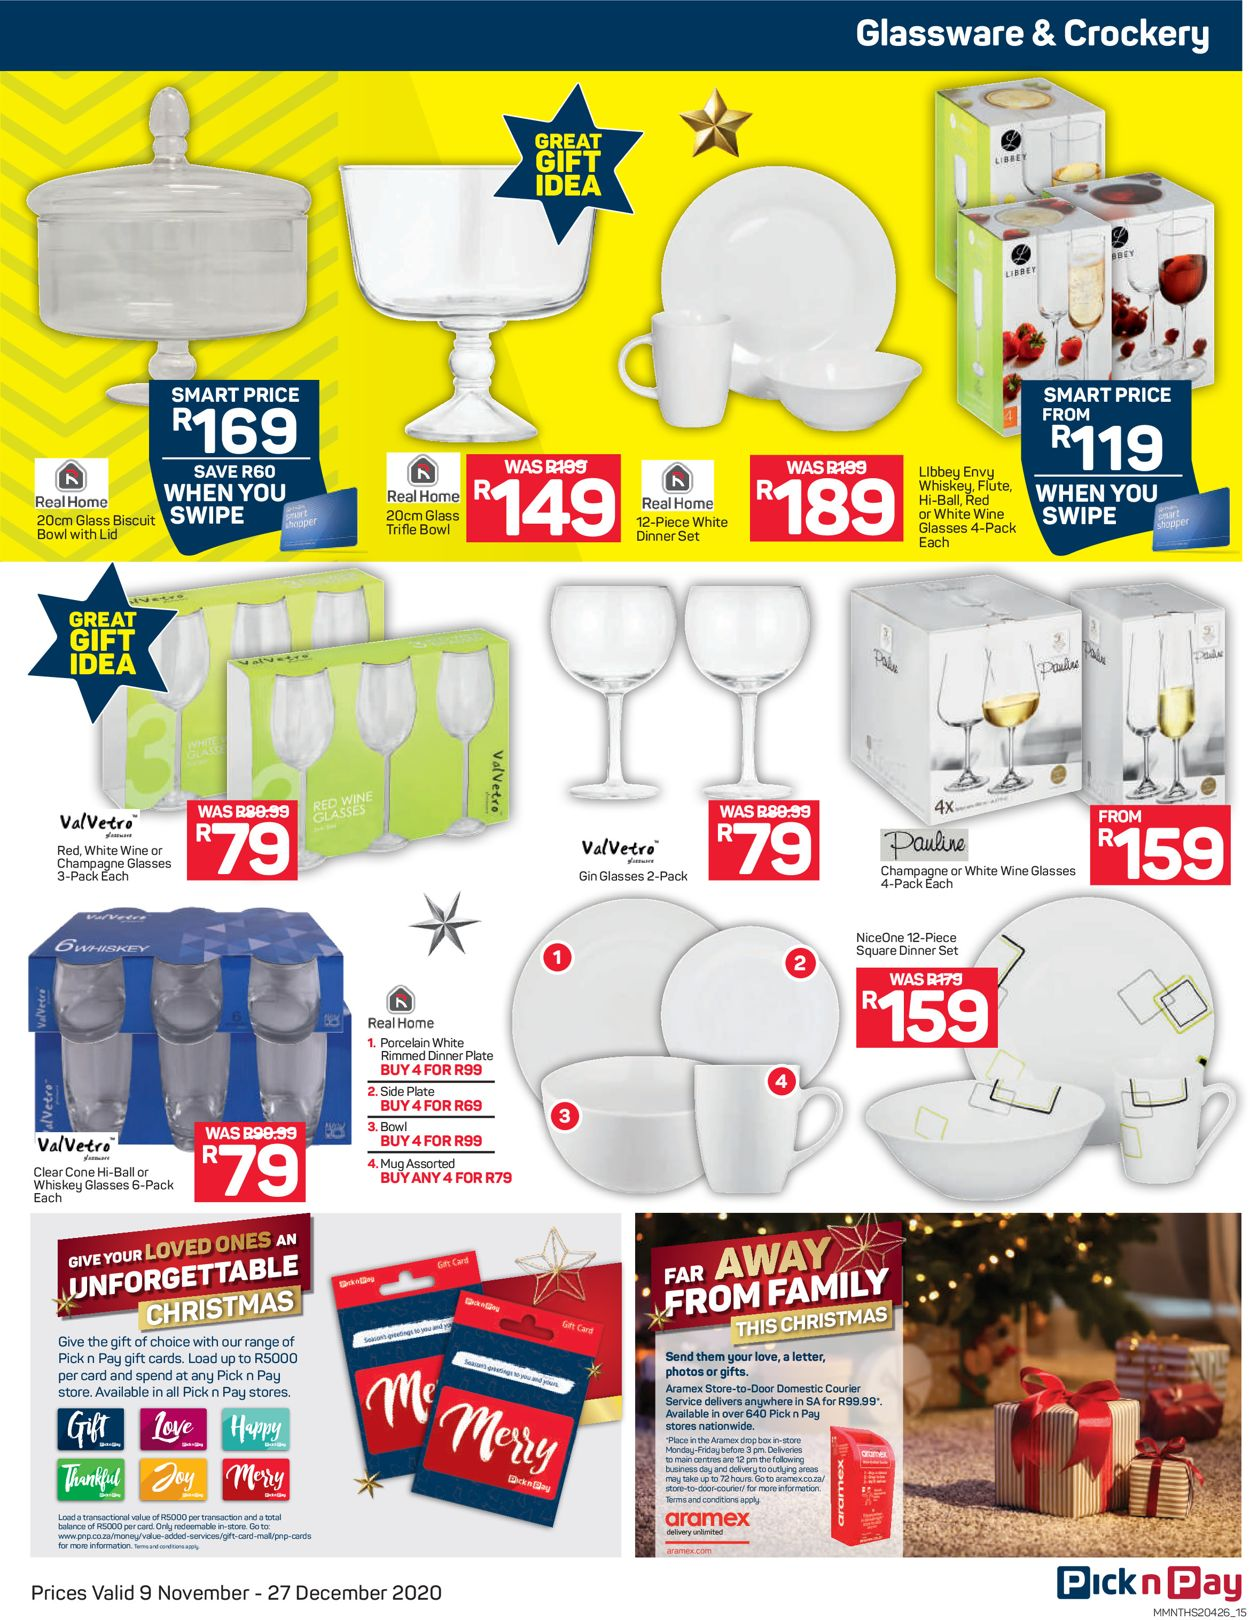 Pick n Pay Holidays 2020 Catalogue - 2020/11/09-2020/11/27 (Page 15)